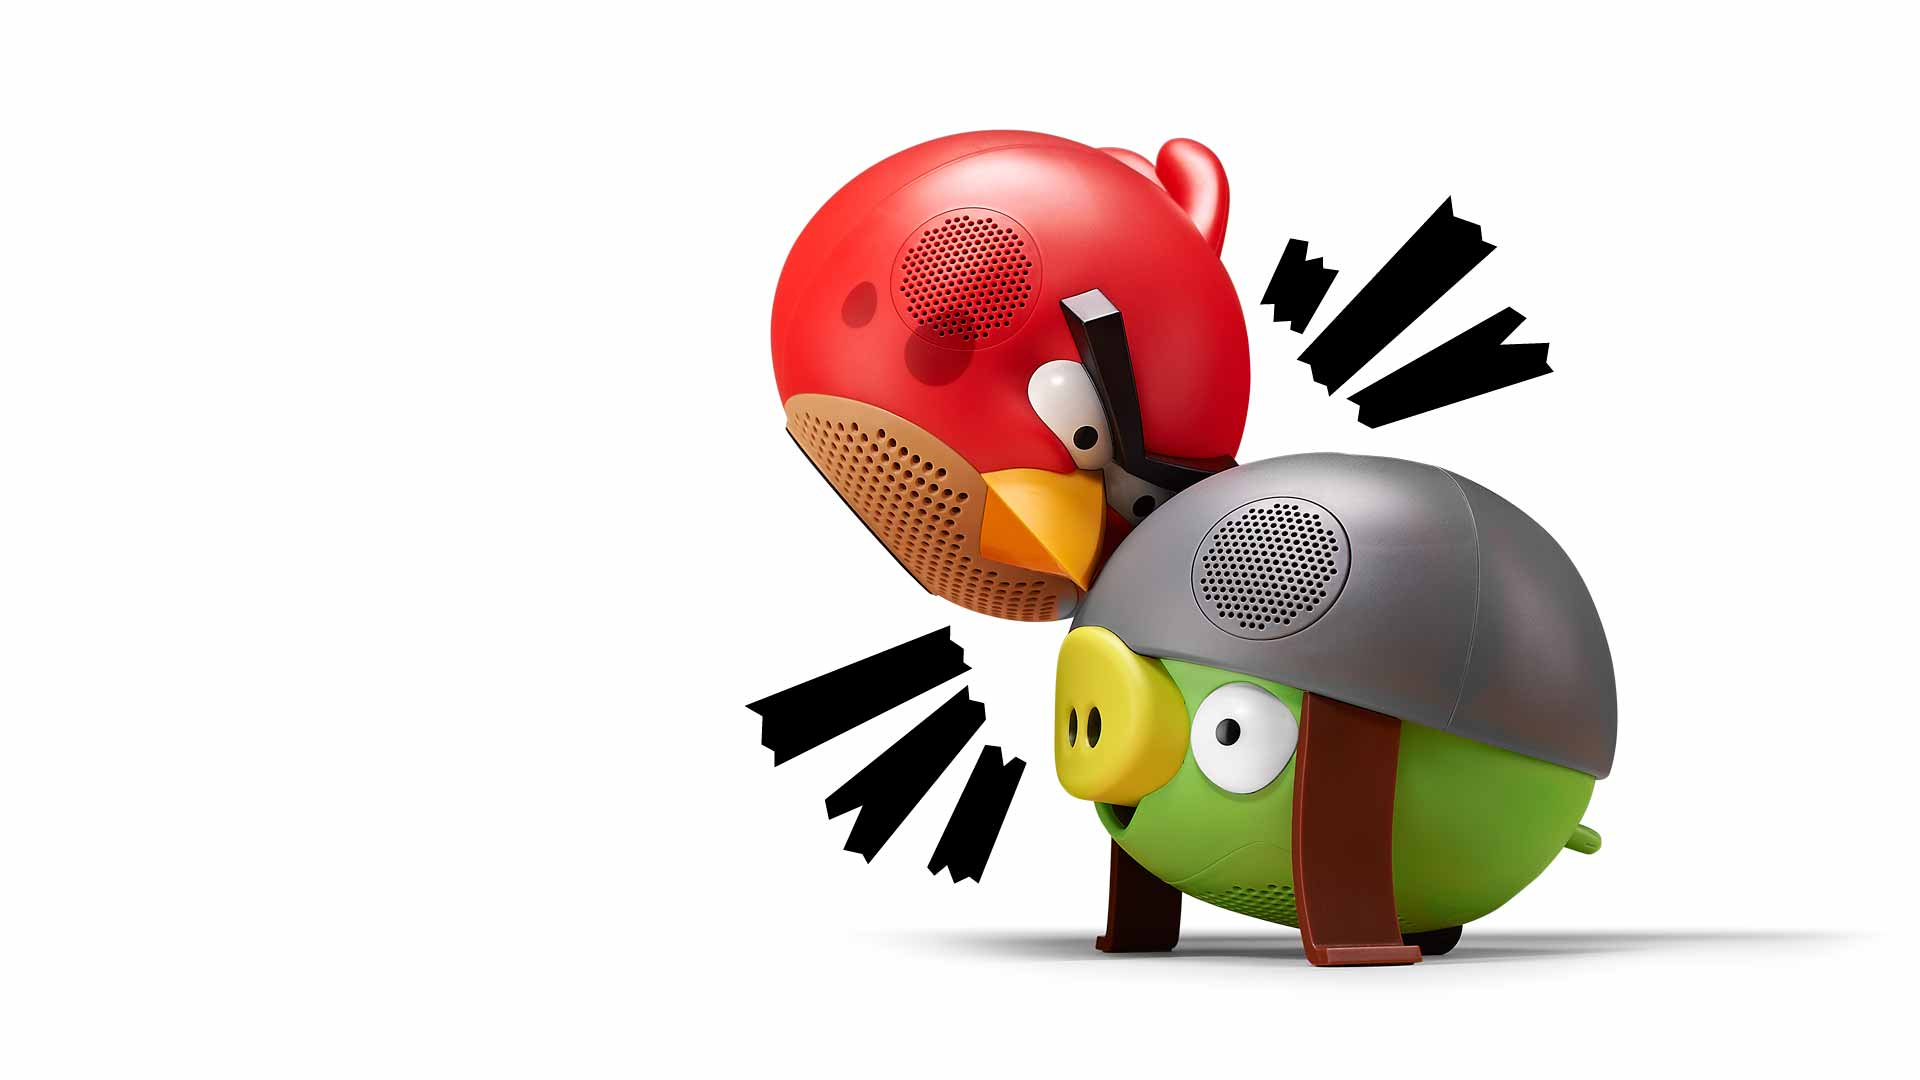 Angry Birds Speakers with head banging bass.